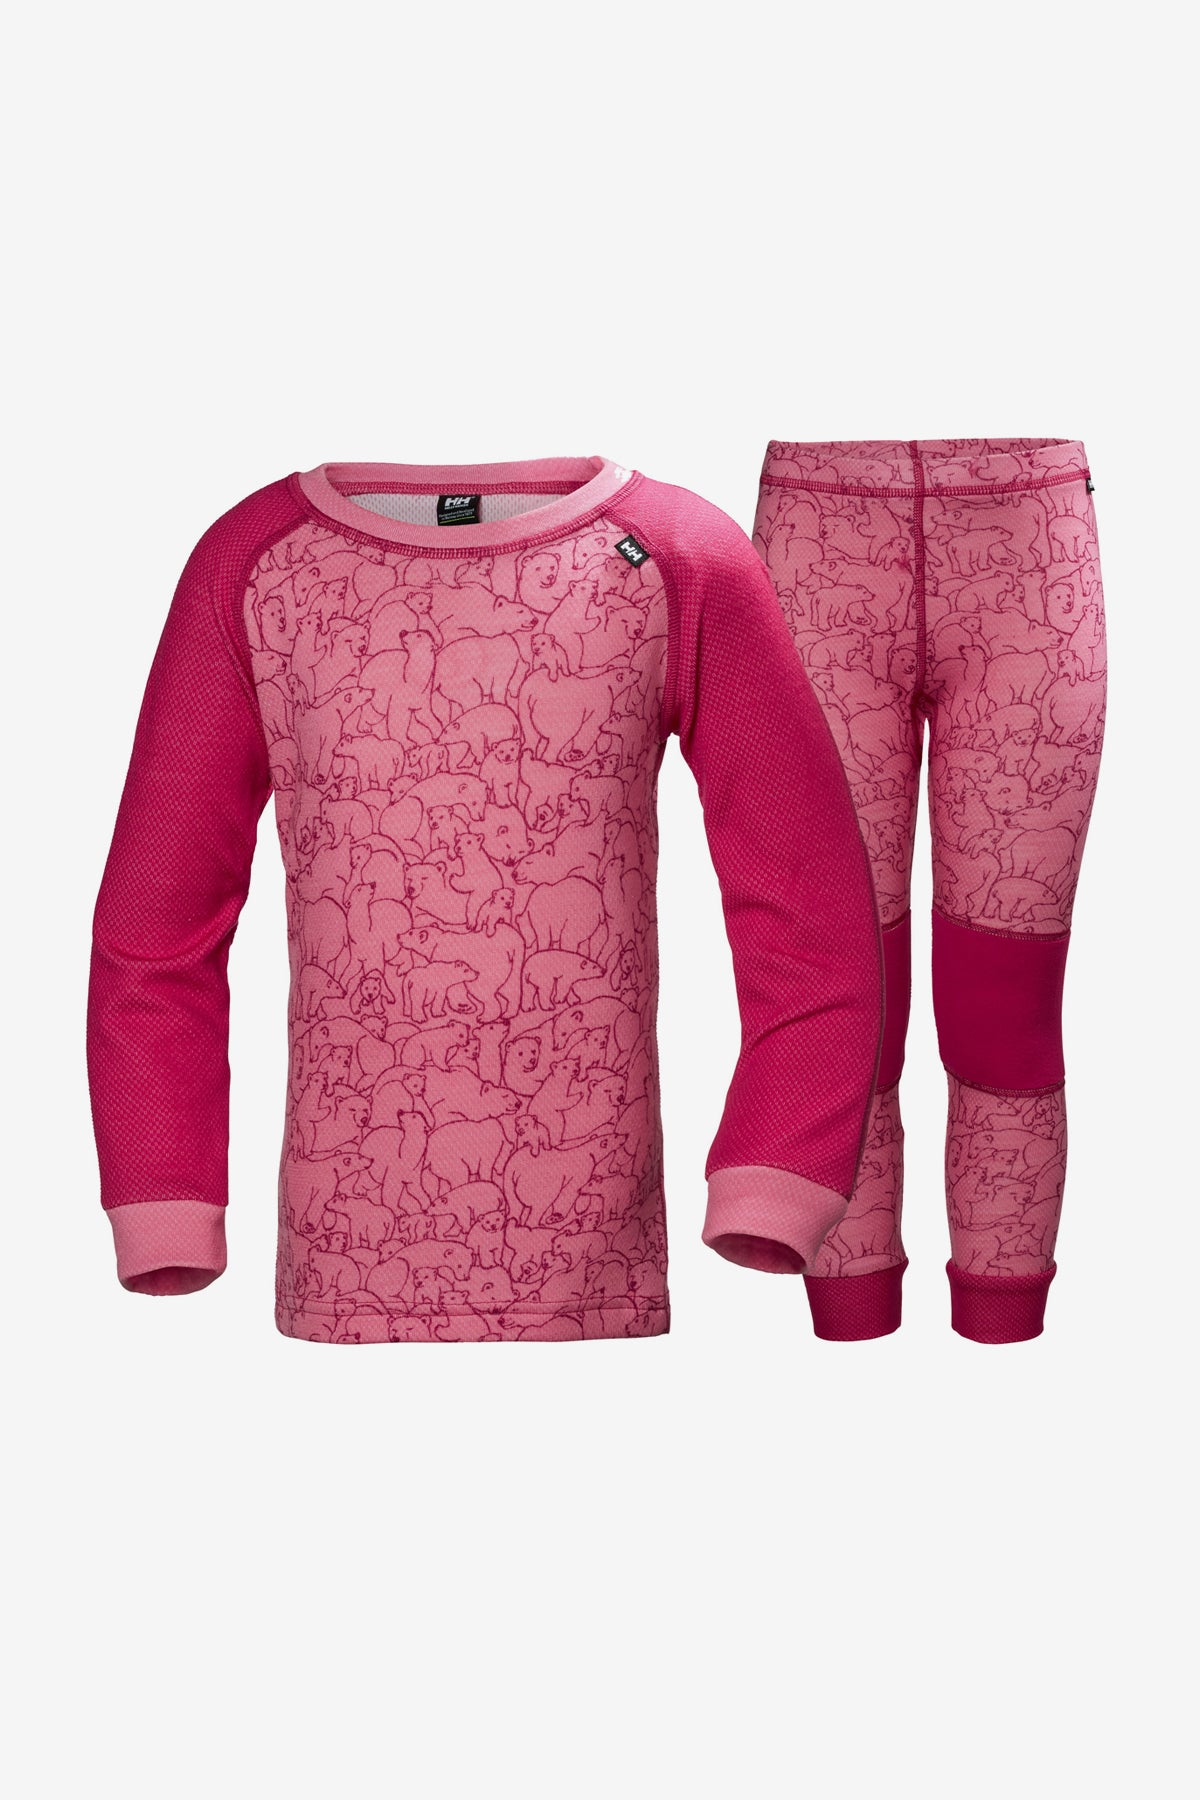 Helly Hansen Girls Baselayer Set - Bright Rose (Size 3 left)